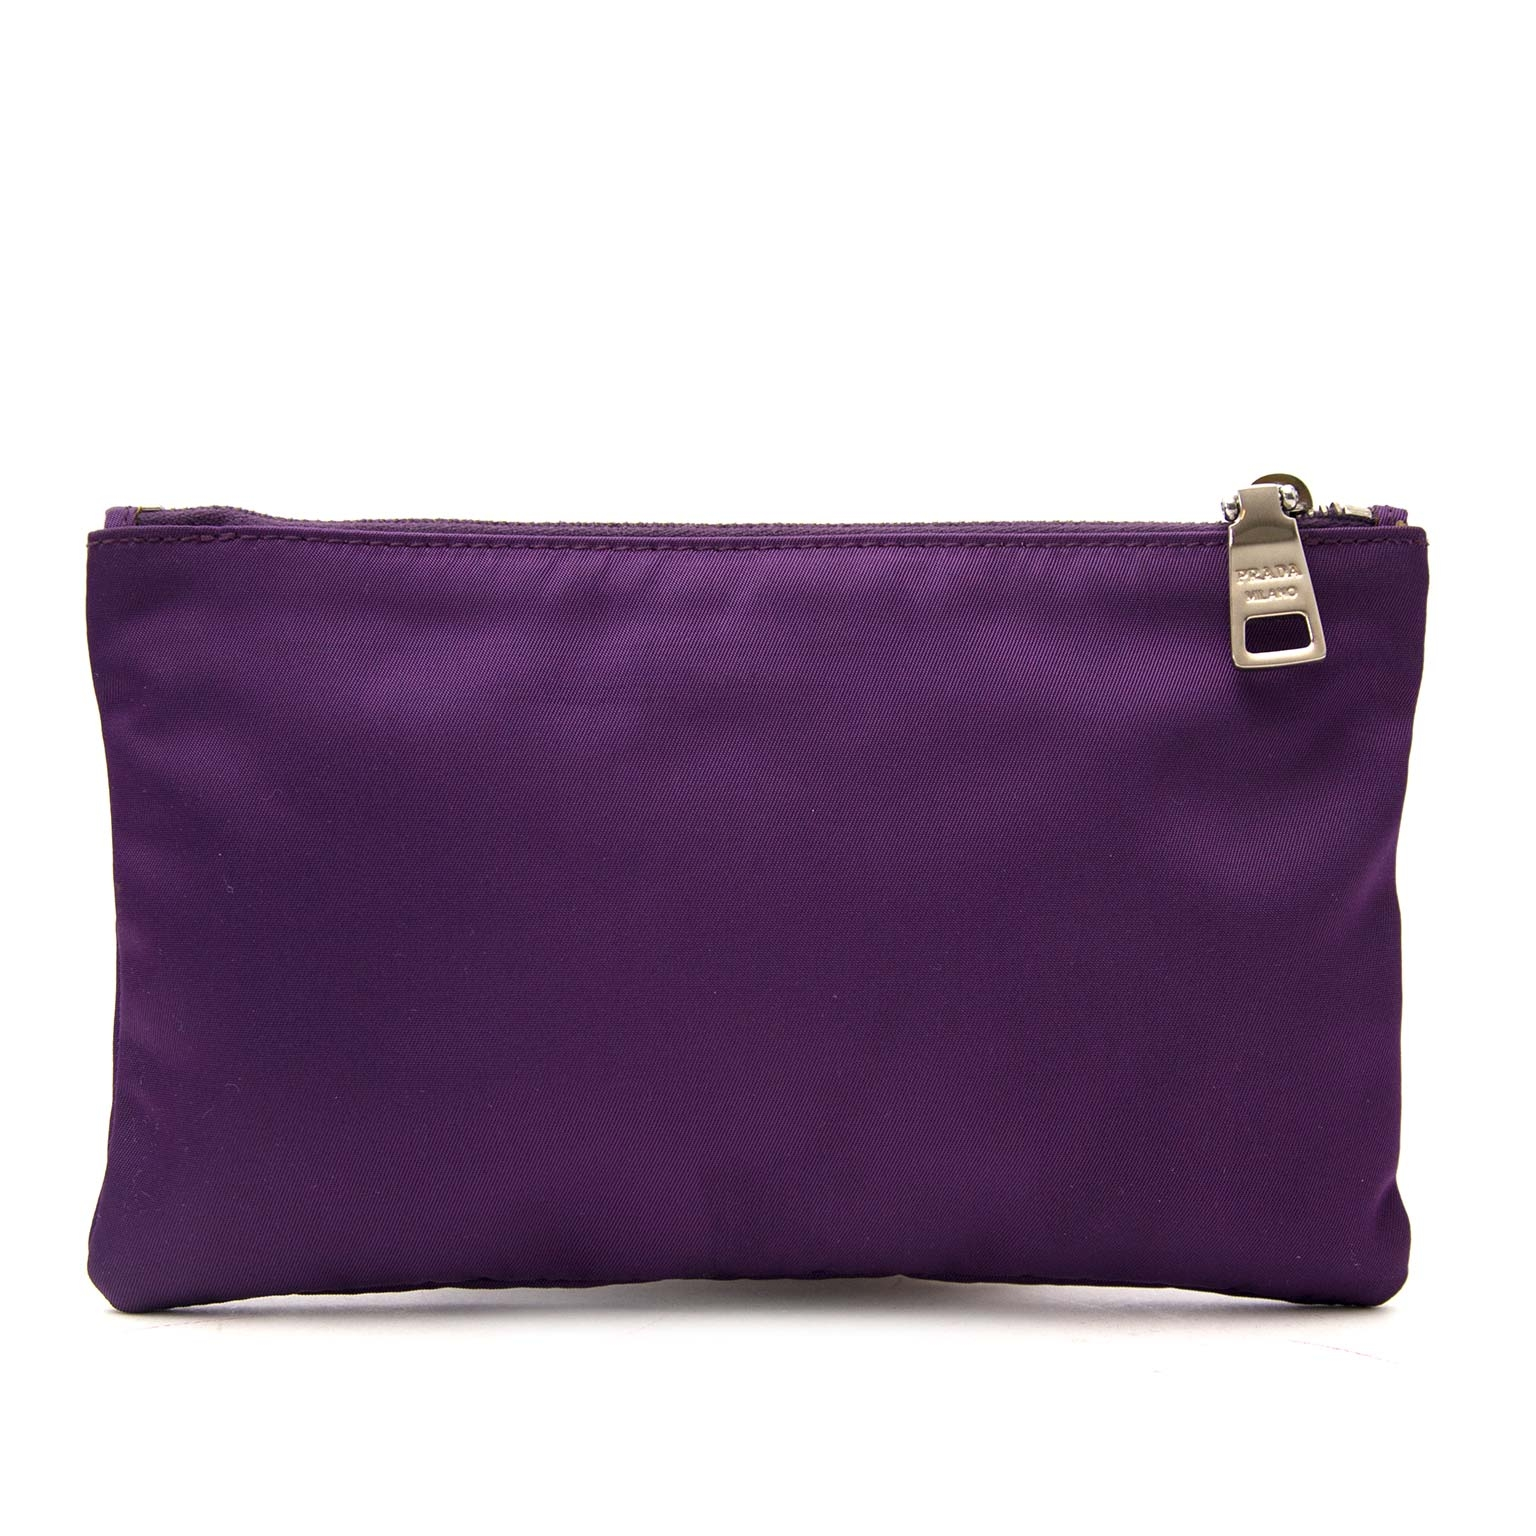 4963d2e786b6 ... Prada Purple Pouch With Puppy Detail Buy authentic designer Prada  secondhand bags at Labellov at the